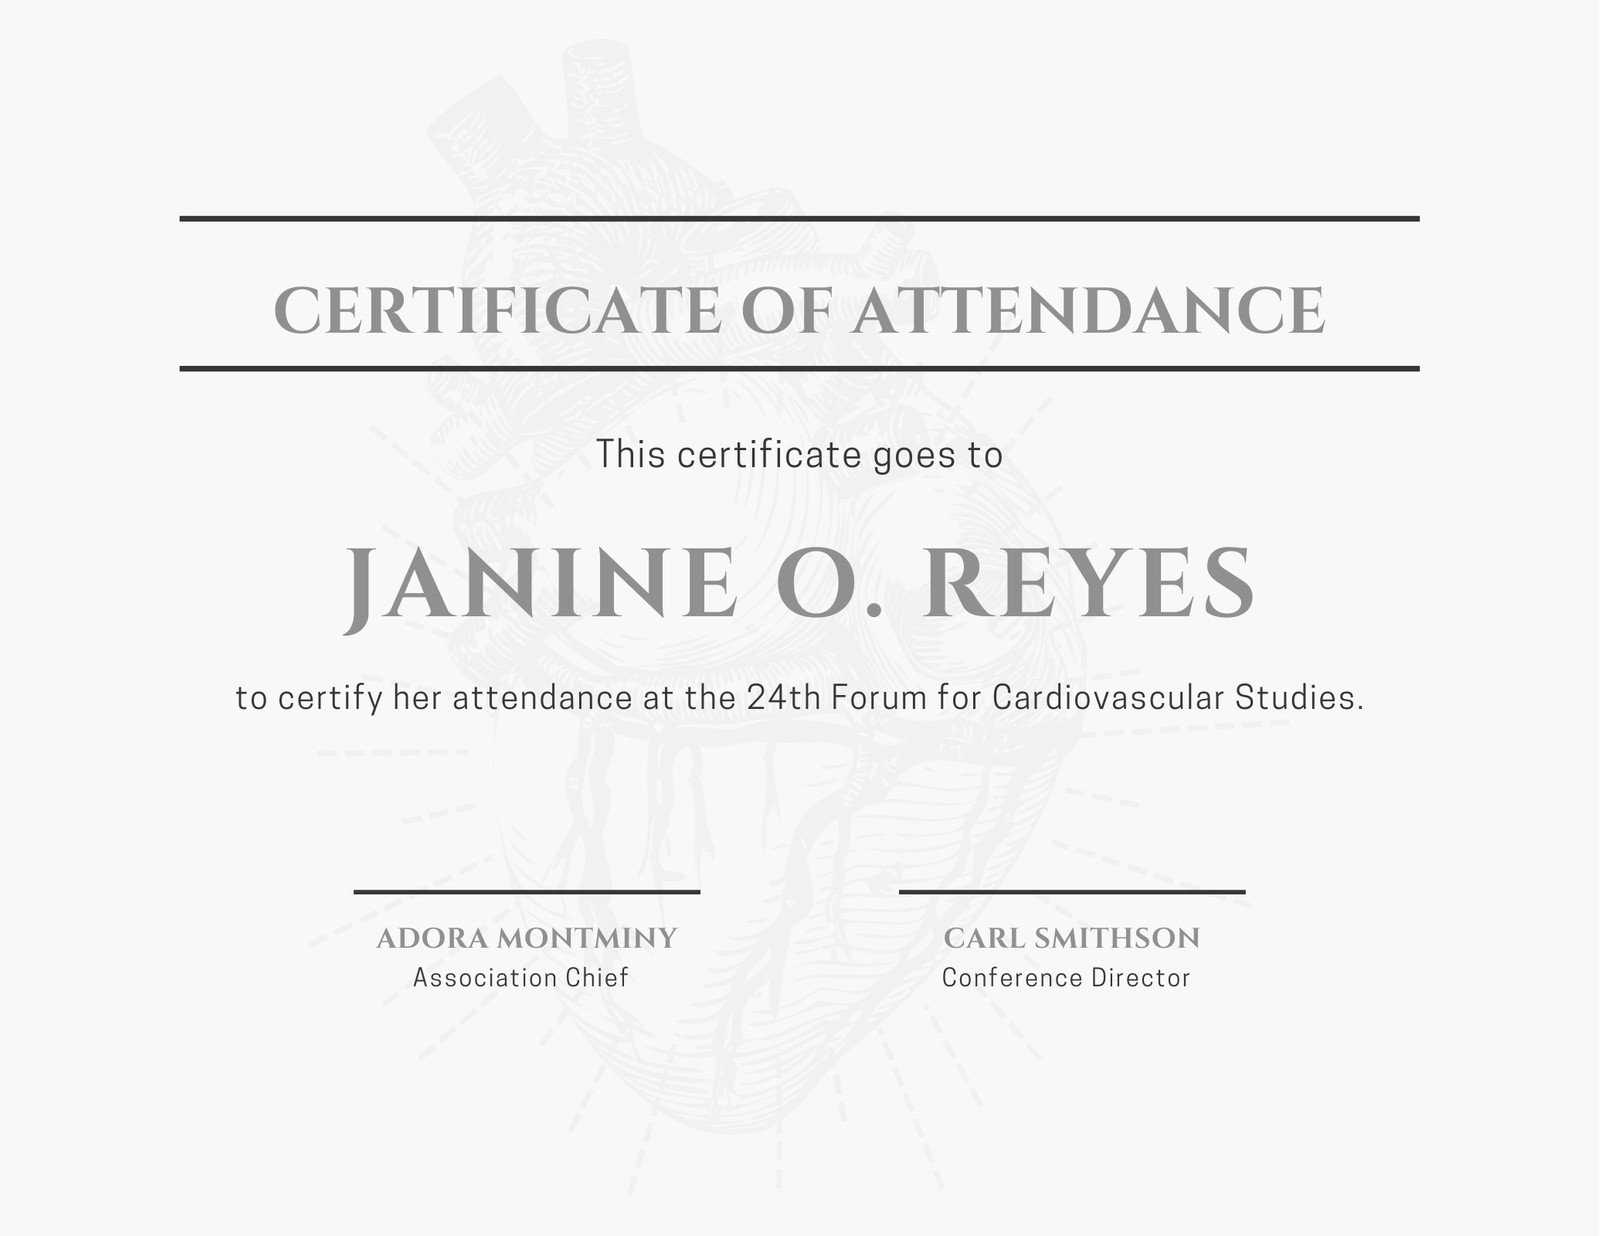 Minimalist Conference Attendance Certificate - Templates With Regard To Certificate Of Attendance Conference Template